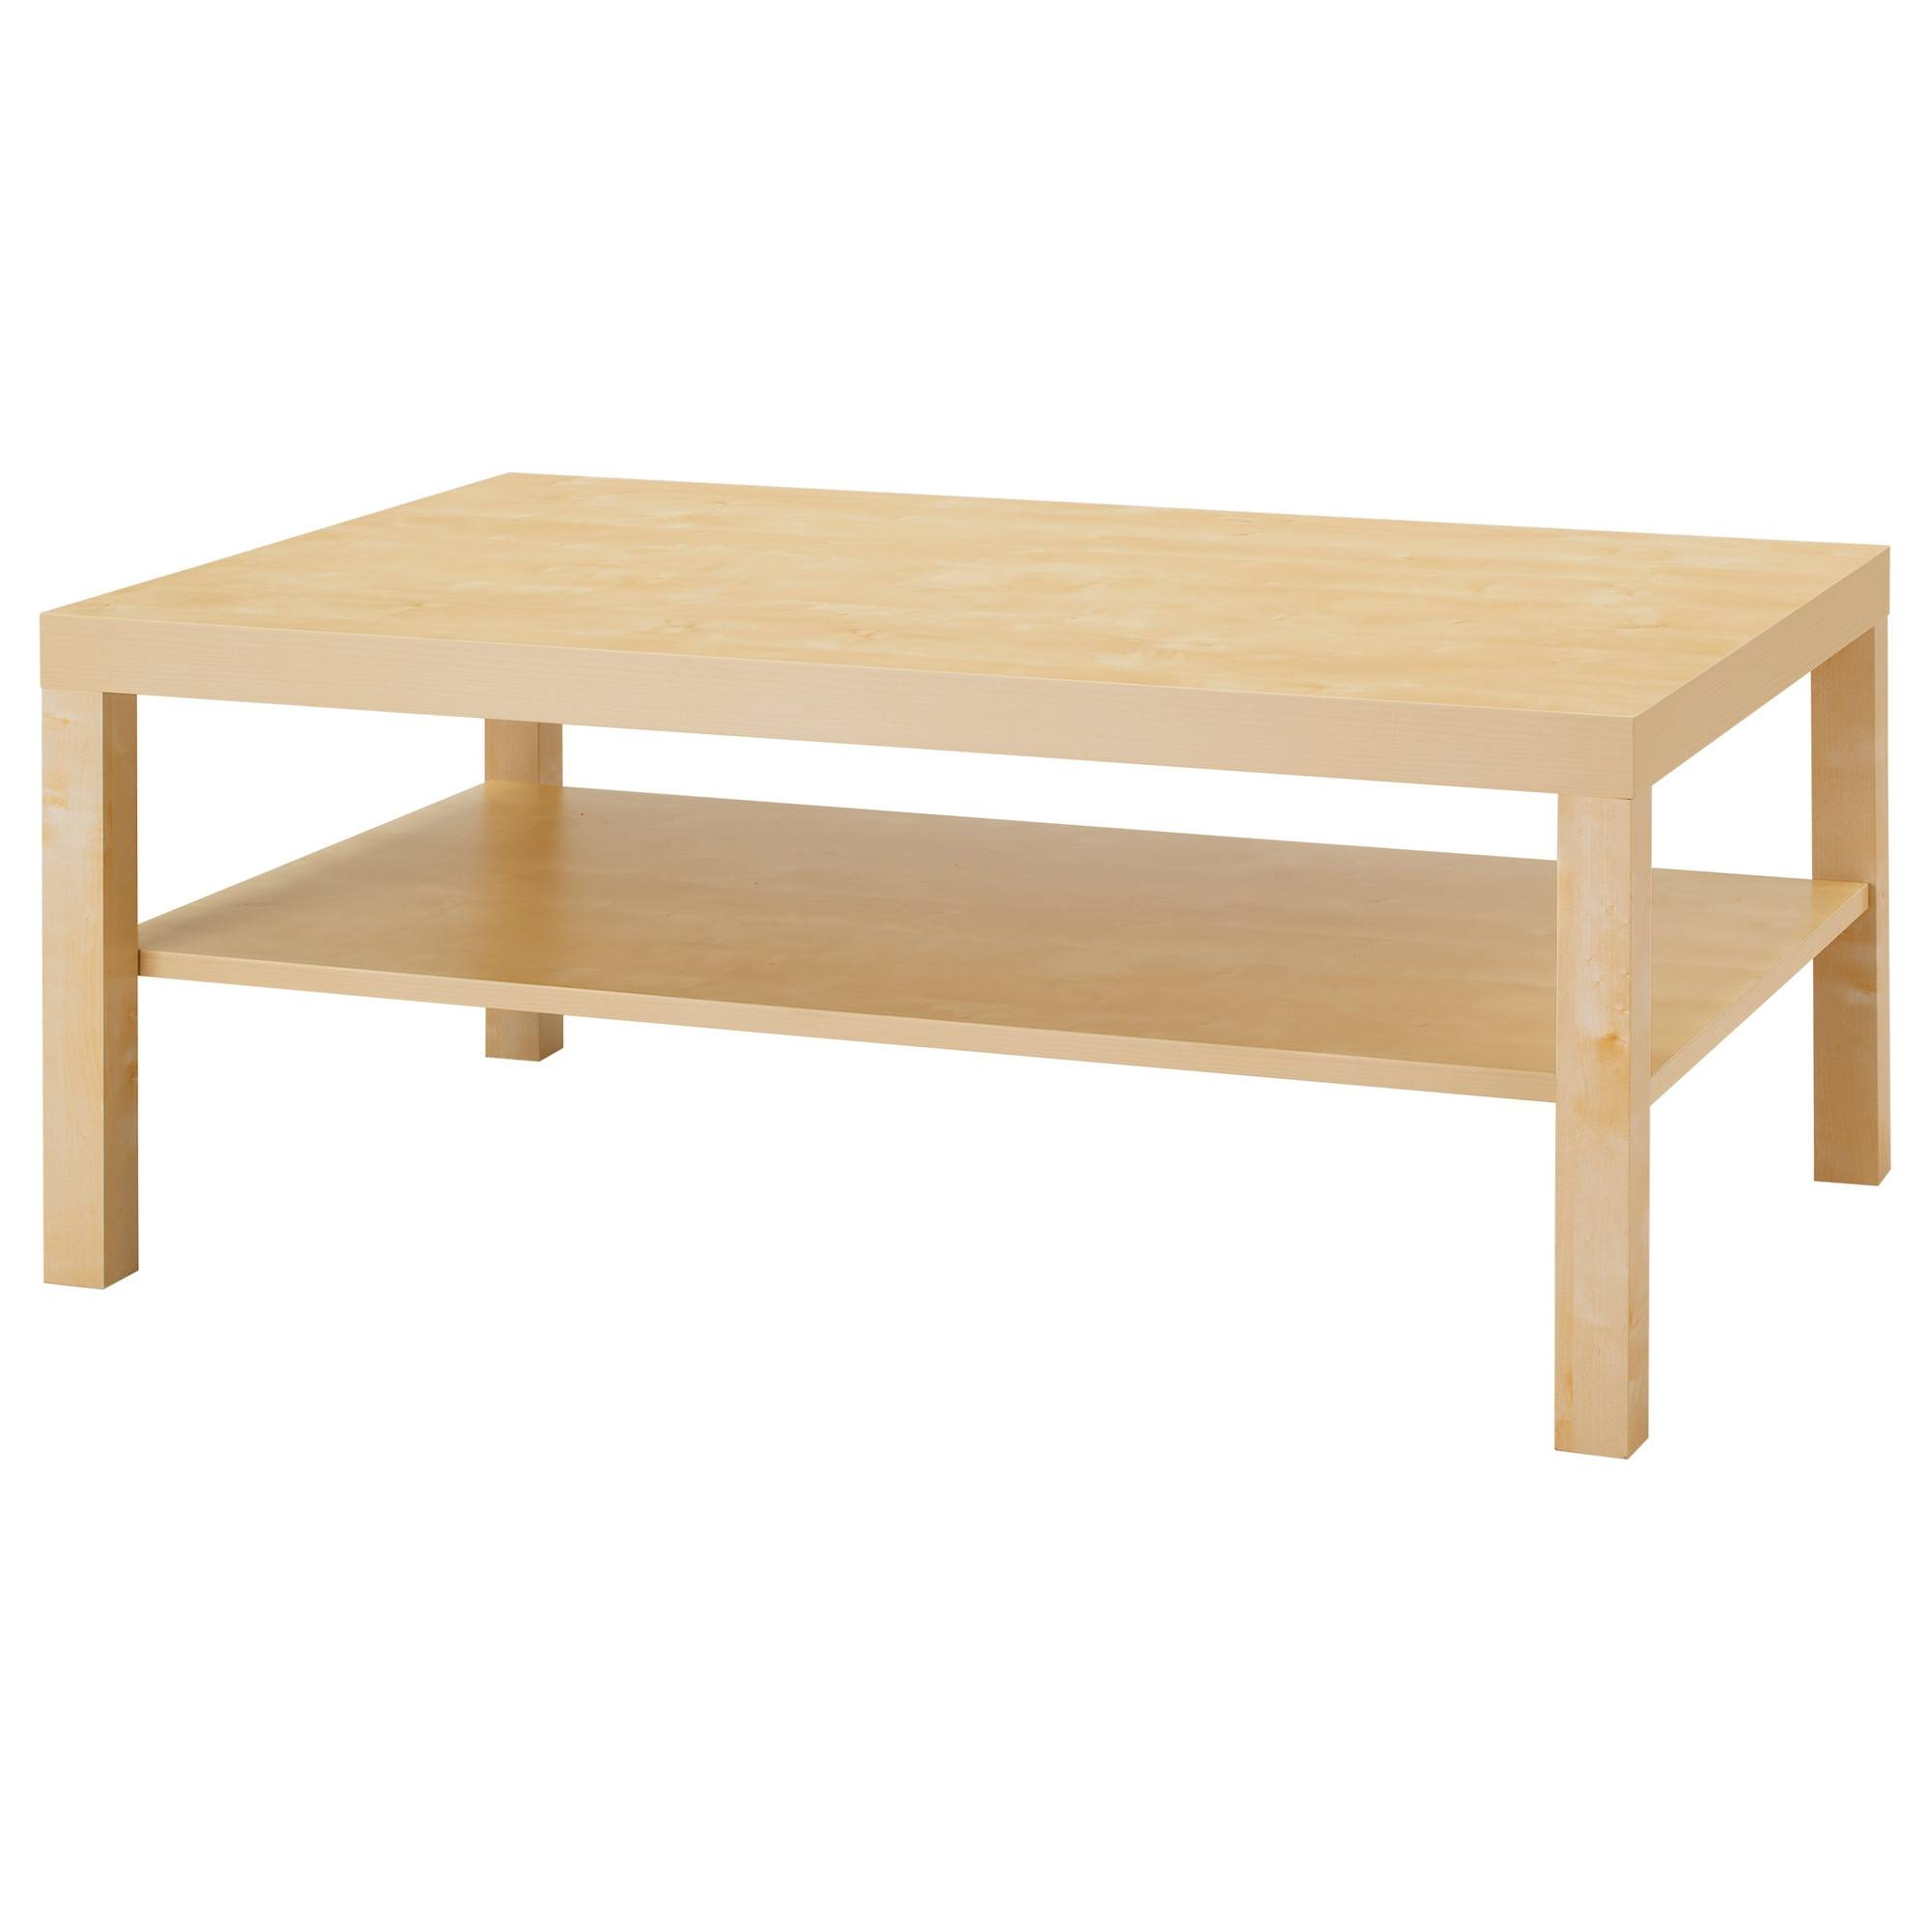 Lack Coffee Table - White - Ikea for White And Oak Coffee Tables (Image 17 of 30)